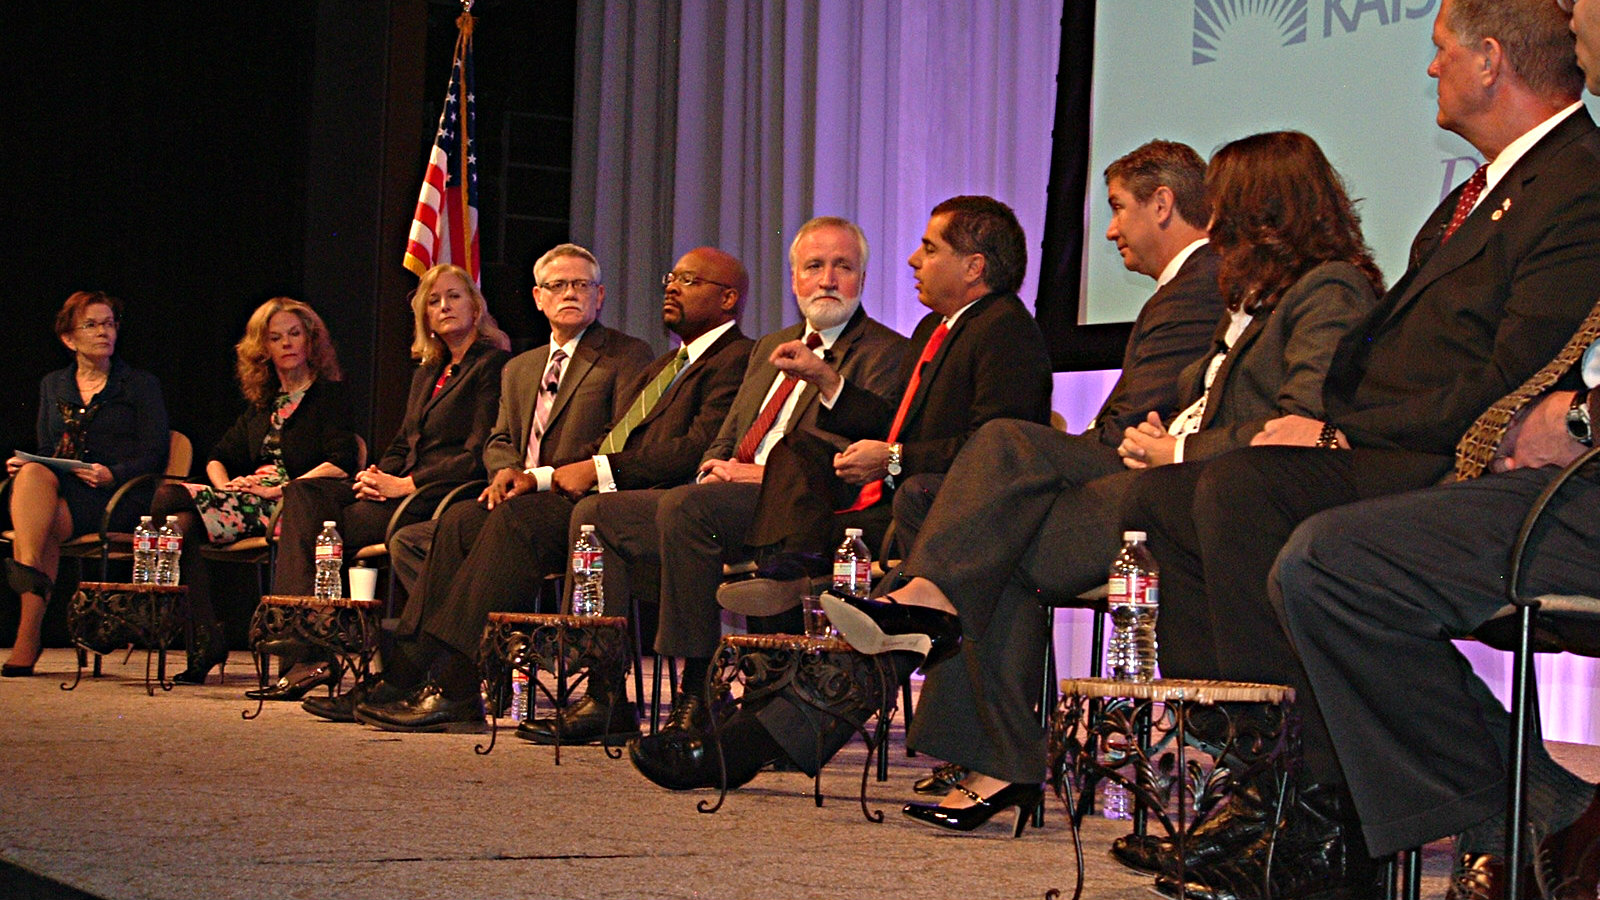 Photo: School superintendents at Business and Education Forum